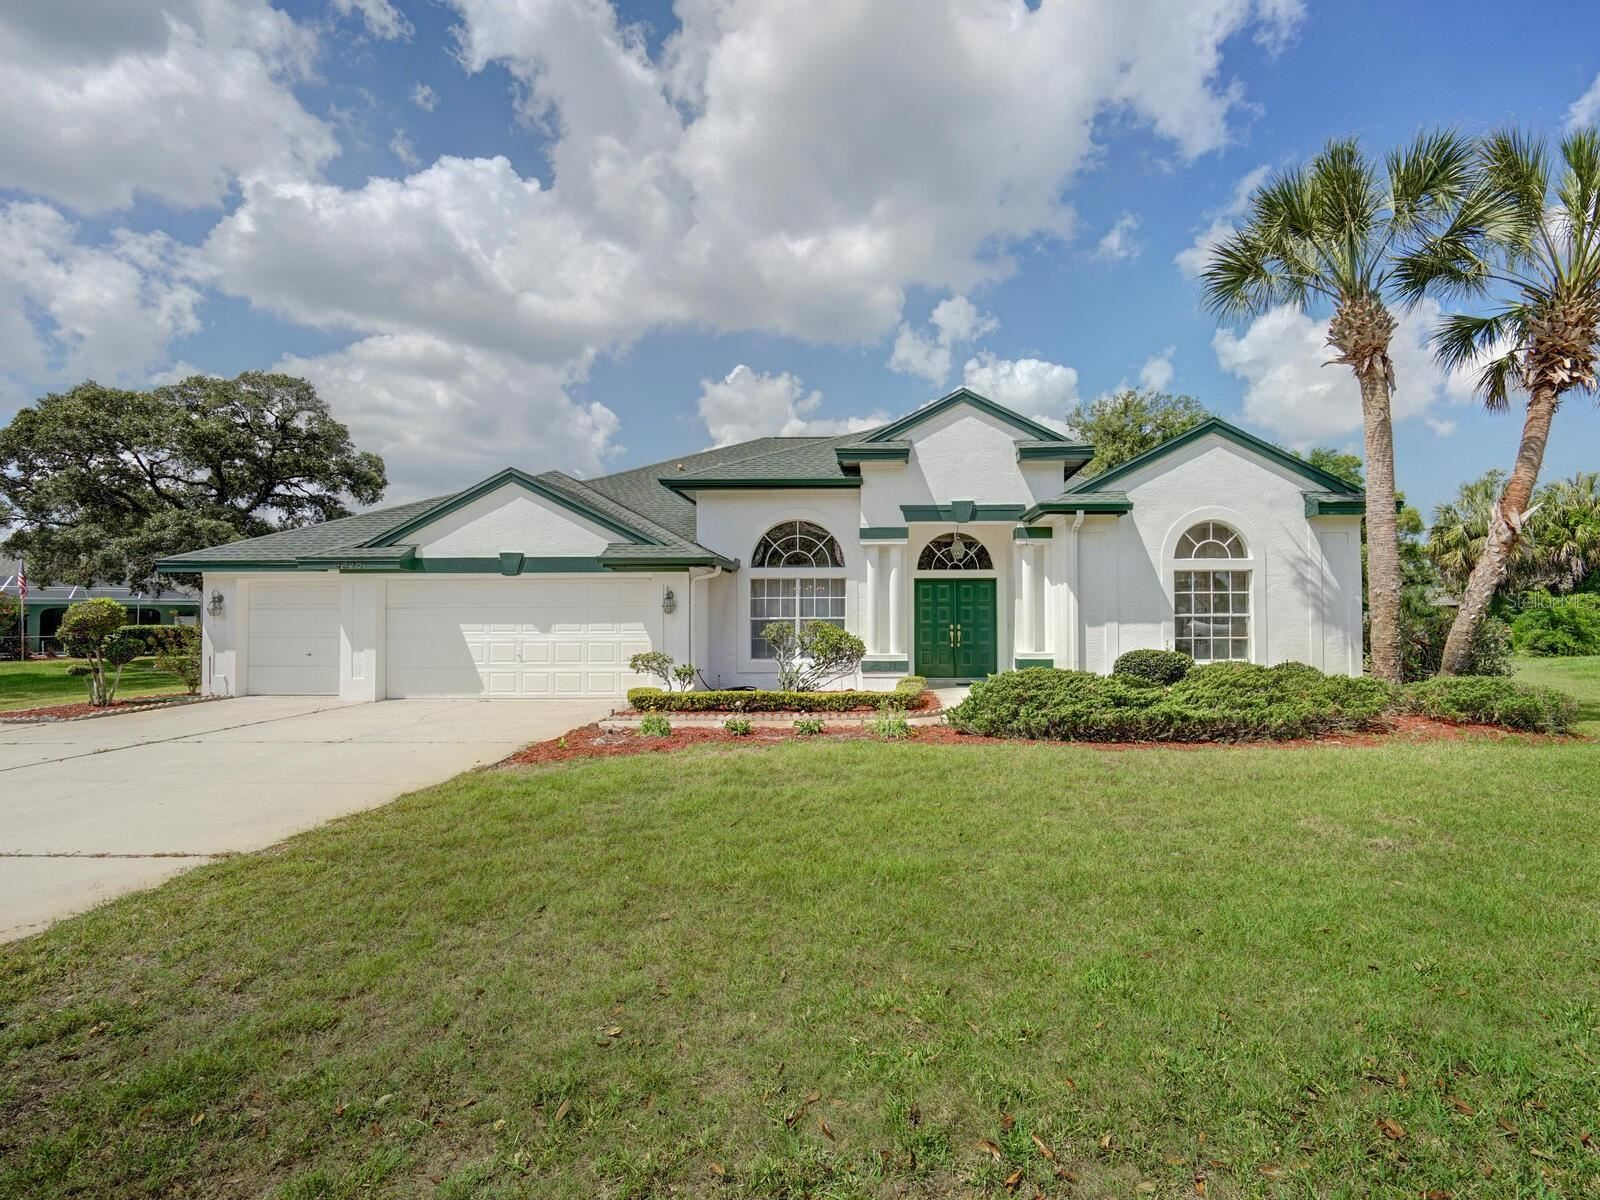 9415 APPLE DUMPLING COURT, Weeki Wachee, FL 34613 - #: U8121916